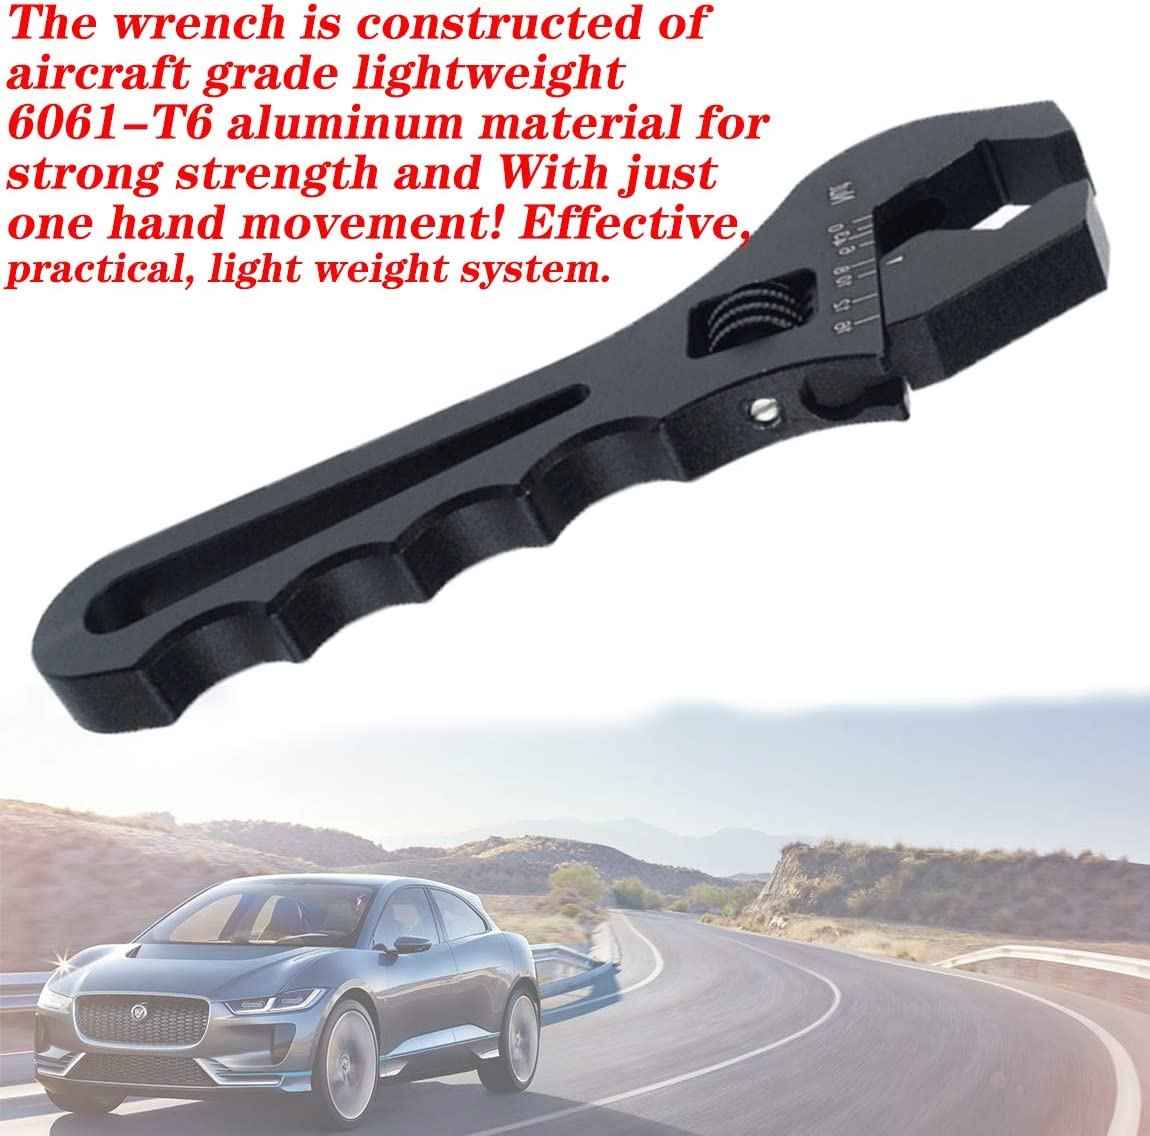 3AN-16AN Adjustable Wrench,Lightweight Aluminum Spanner Tools,for An Hose Fitting Adapters Ends,Black by NAKAO